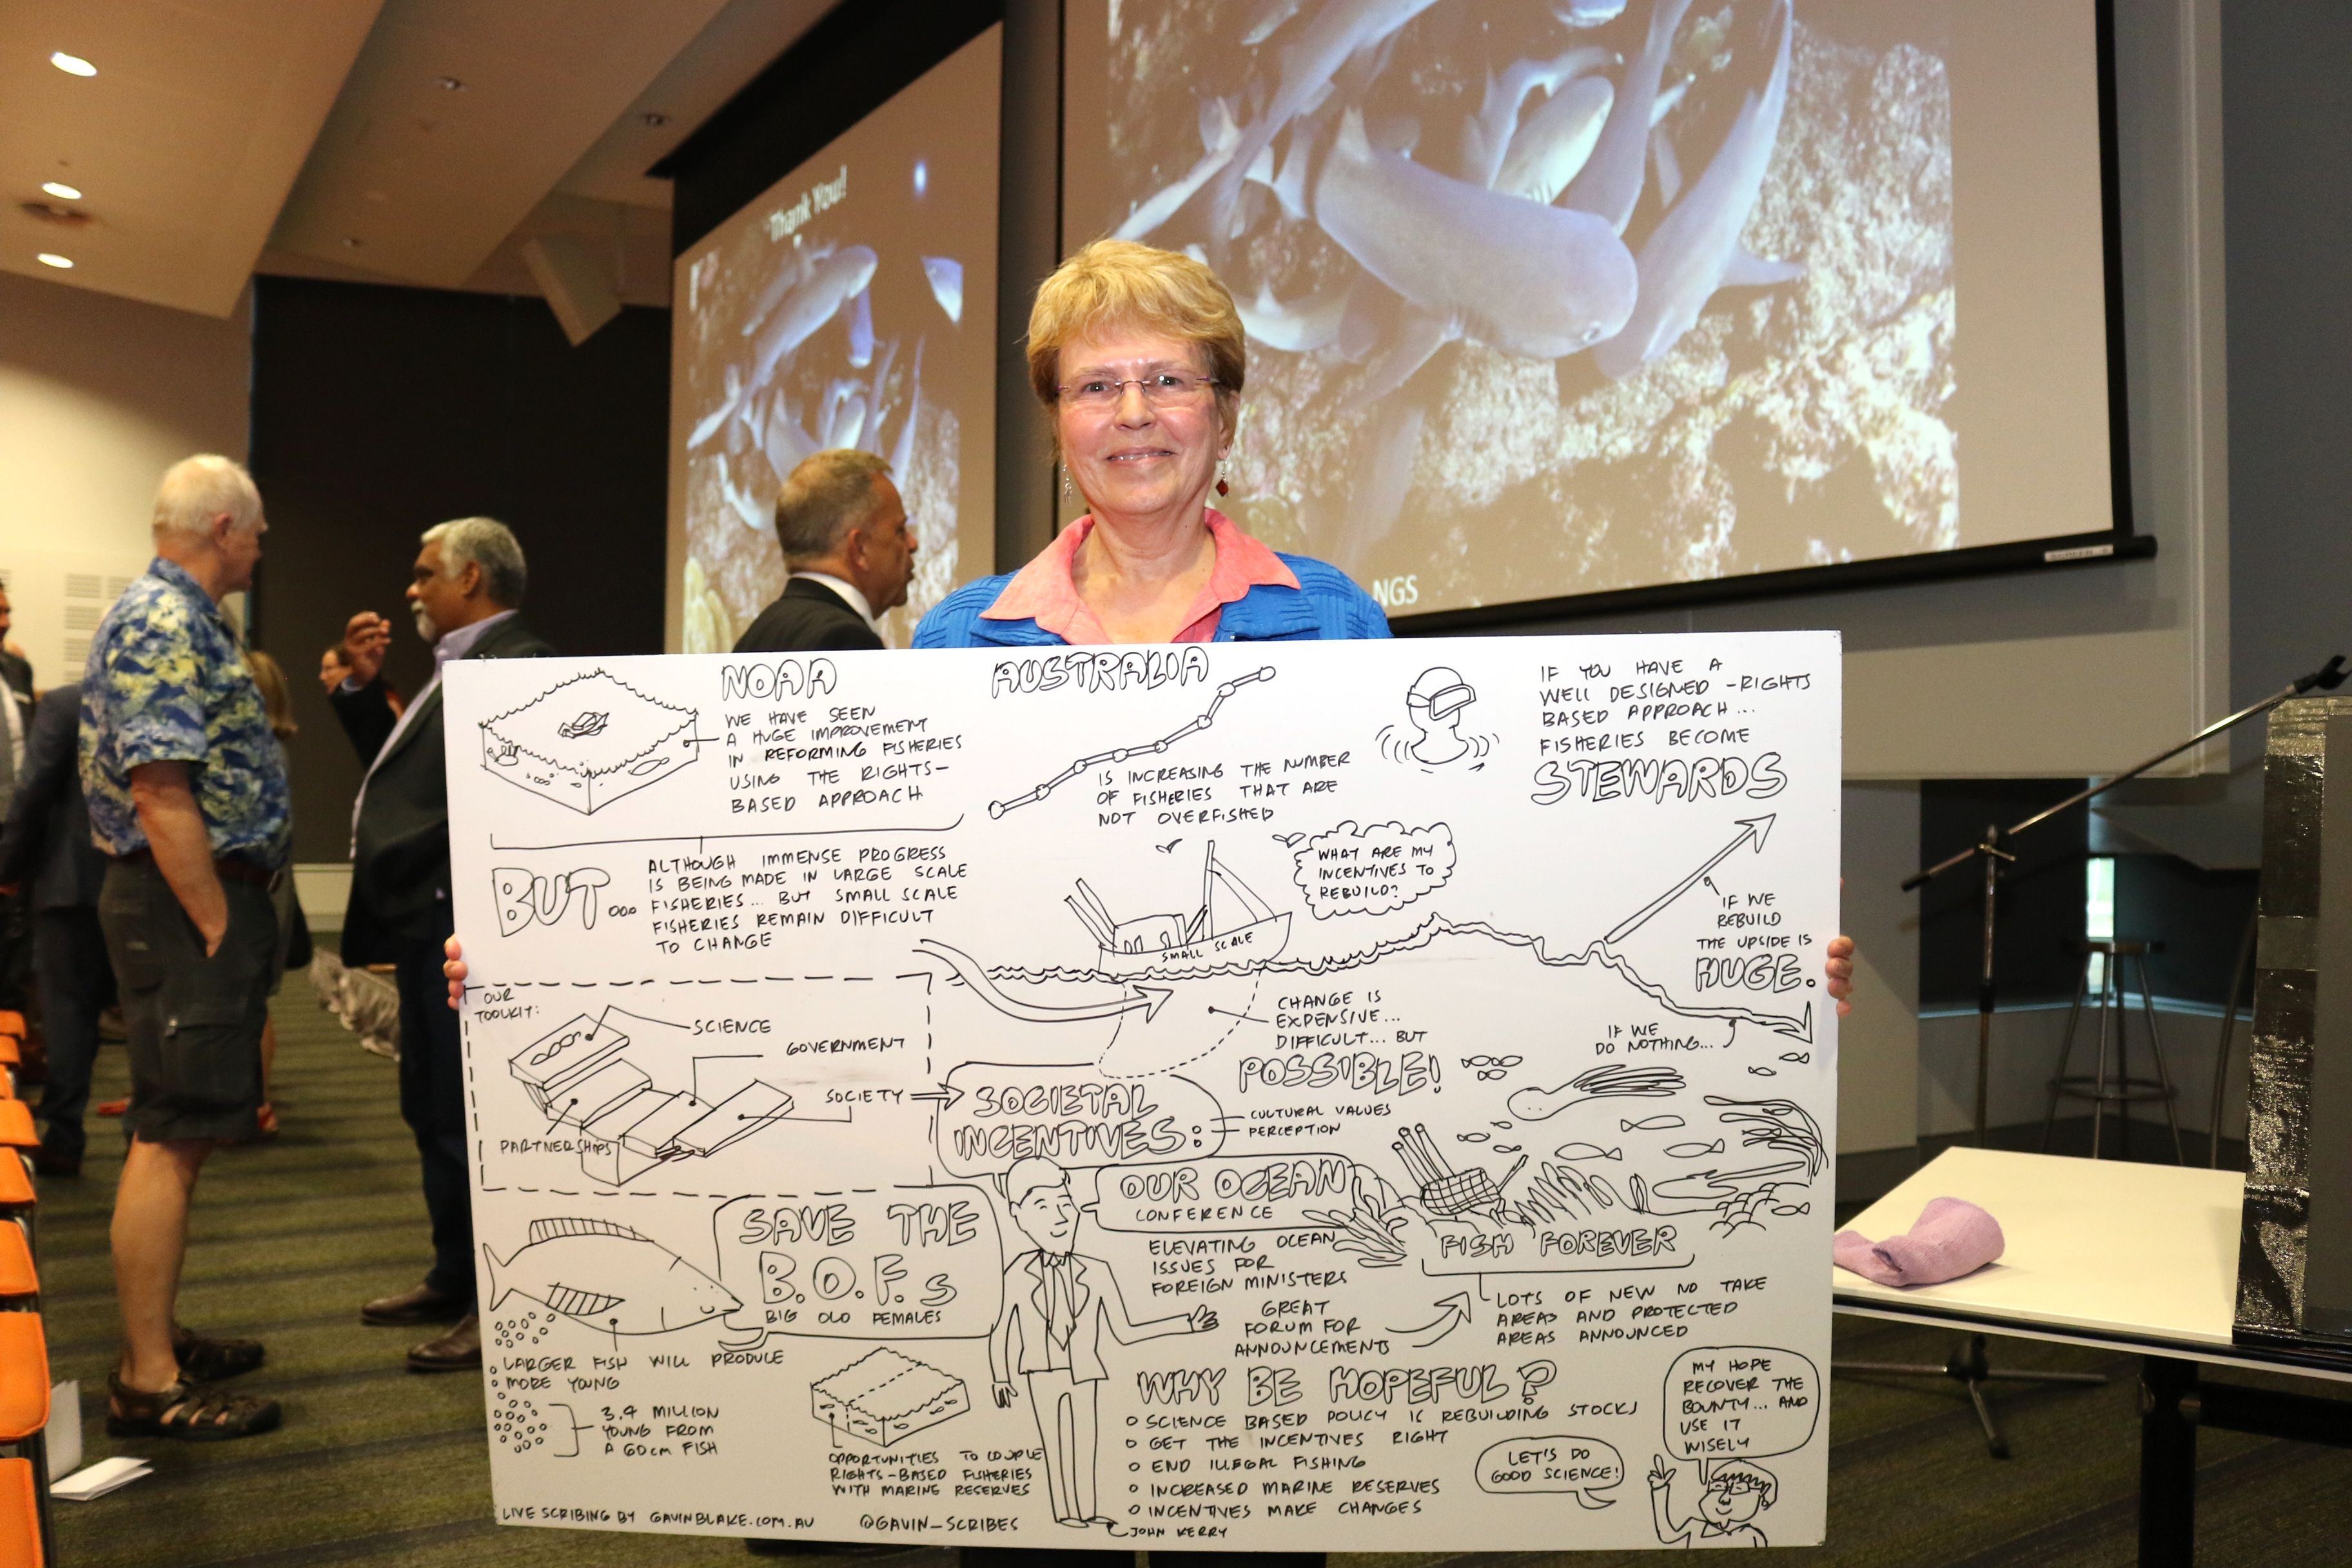 Professor Lubchenco poses with the visual sketch of her lecture by scribe Gavin Blake